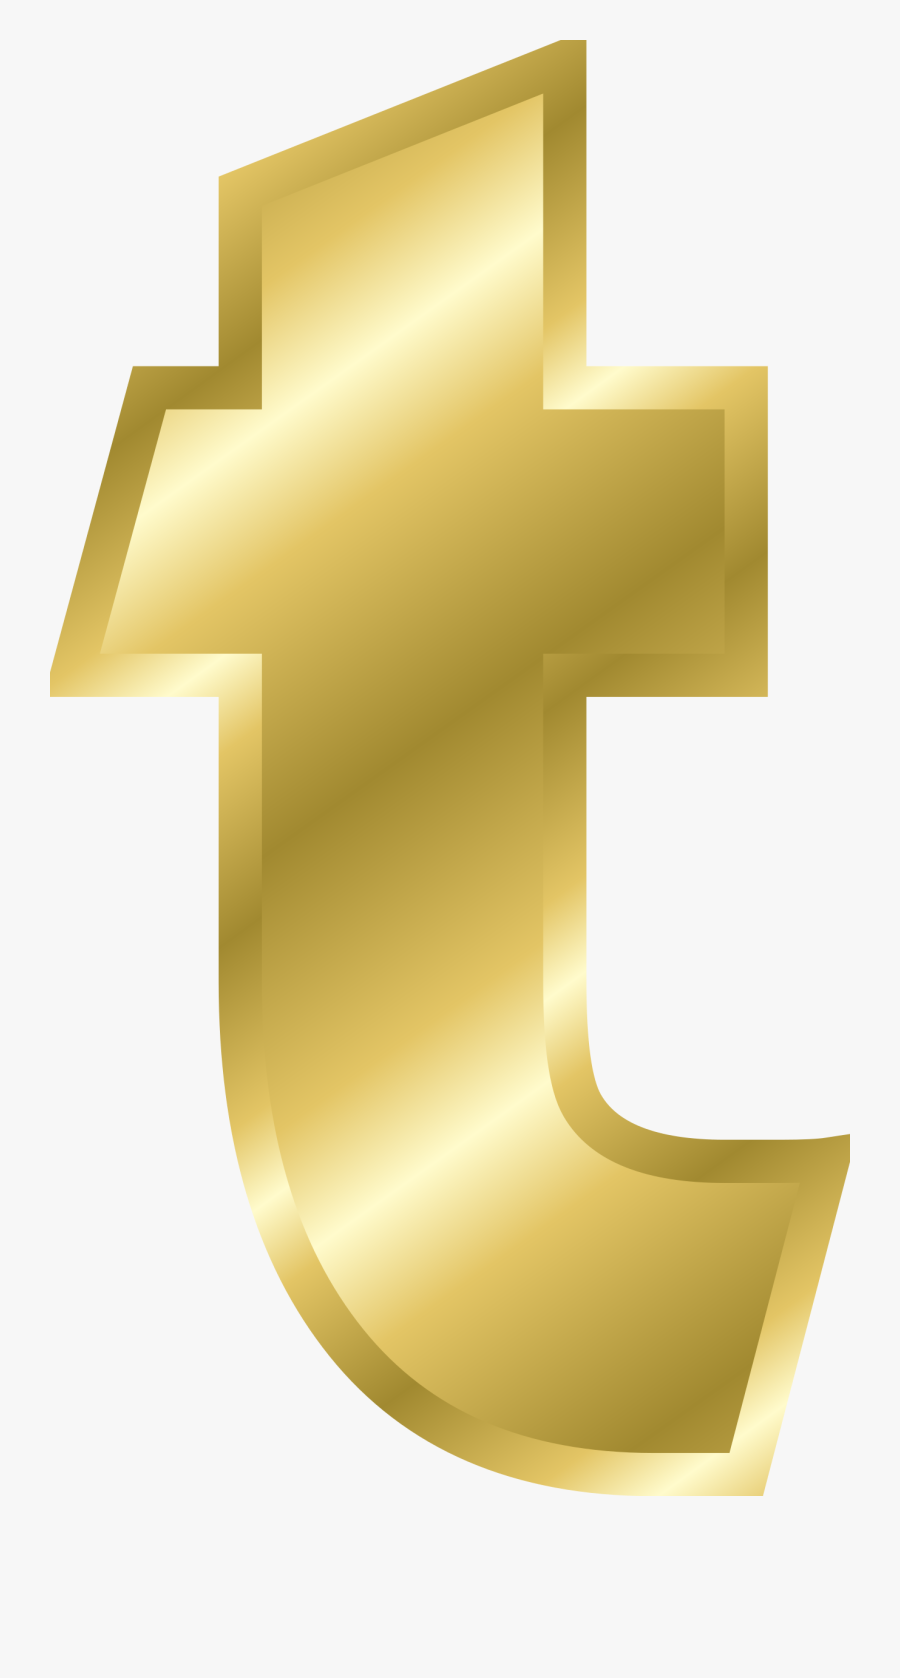 Letter T In Gold, Transparent Clipart